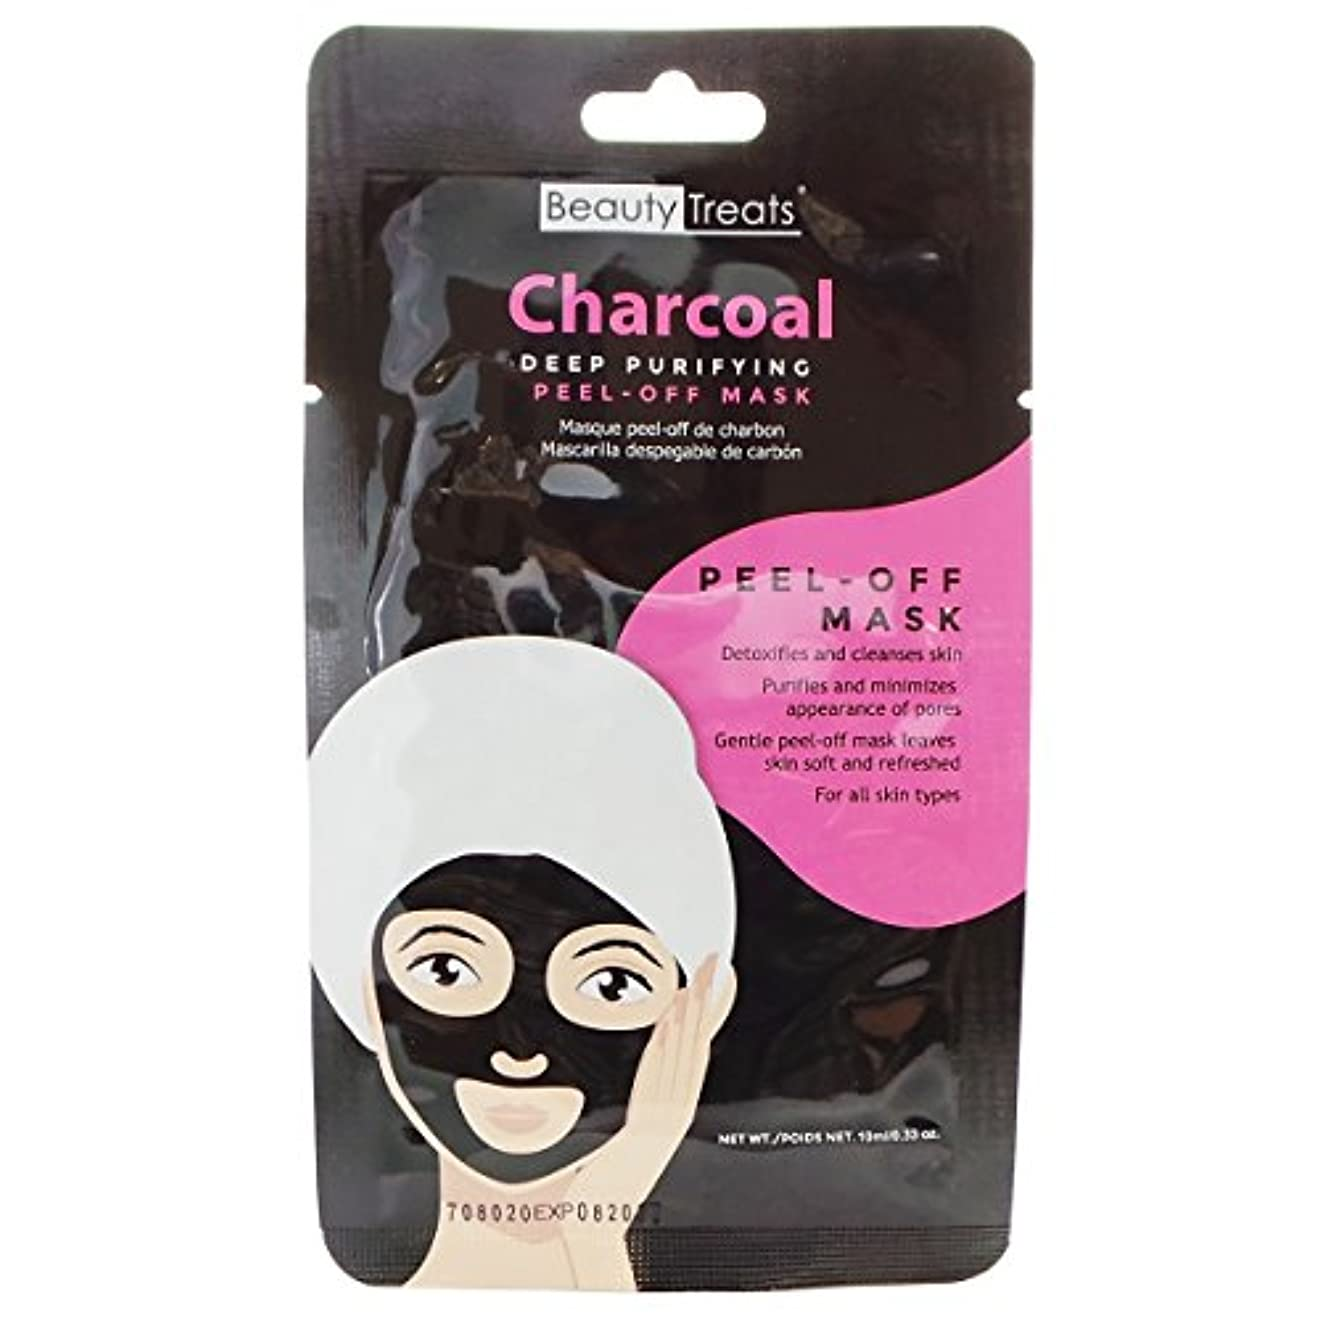 望みおとこ不潔(3 Pack) BEAUTY TREATS Deep Purifying Peel-Off Charcoal Mask (並行輸入品)